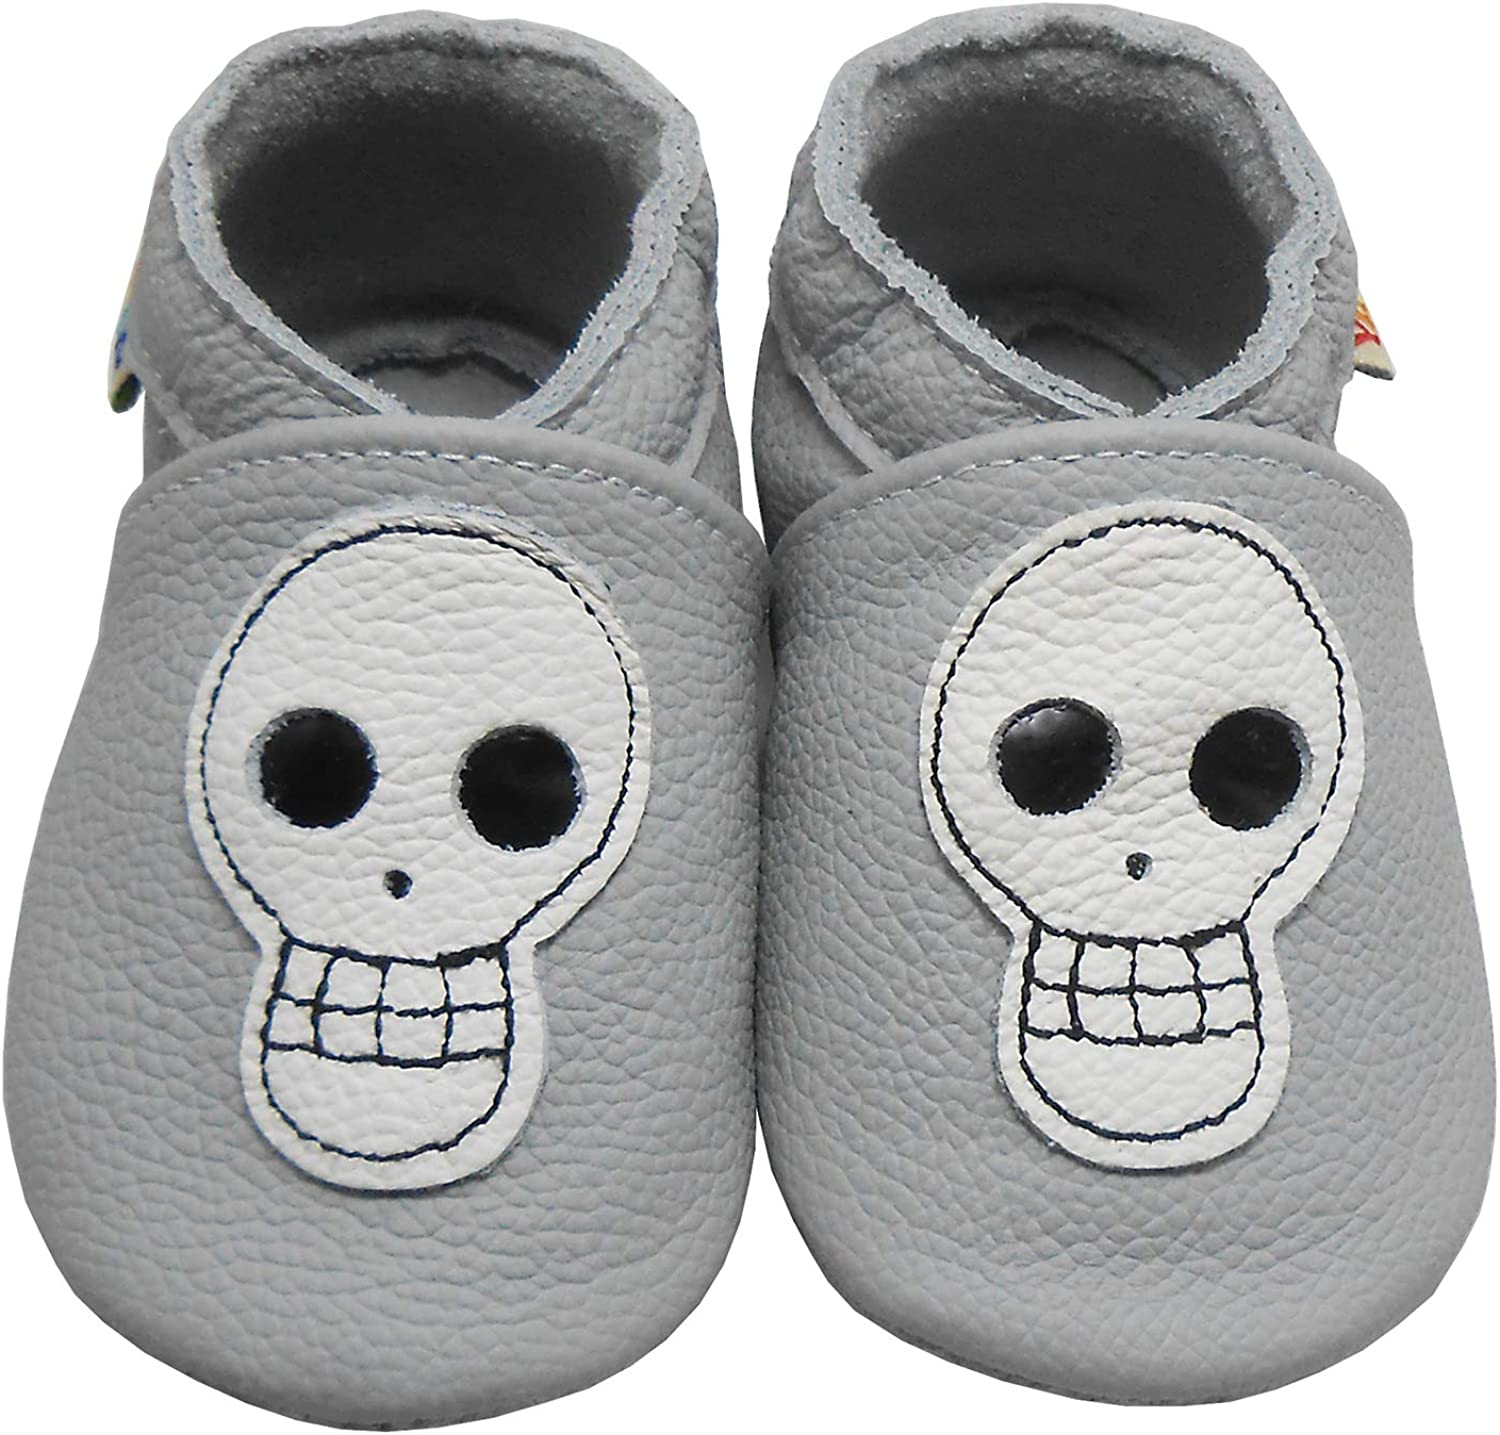 YALION Baby Soft Sole Leather Shoes Infant Toddler Tassels Moccasin Skull Ghost (Grey Skull, 6_Months)